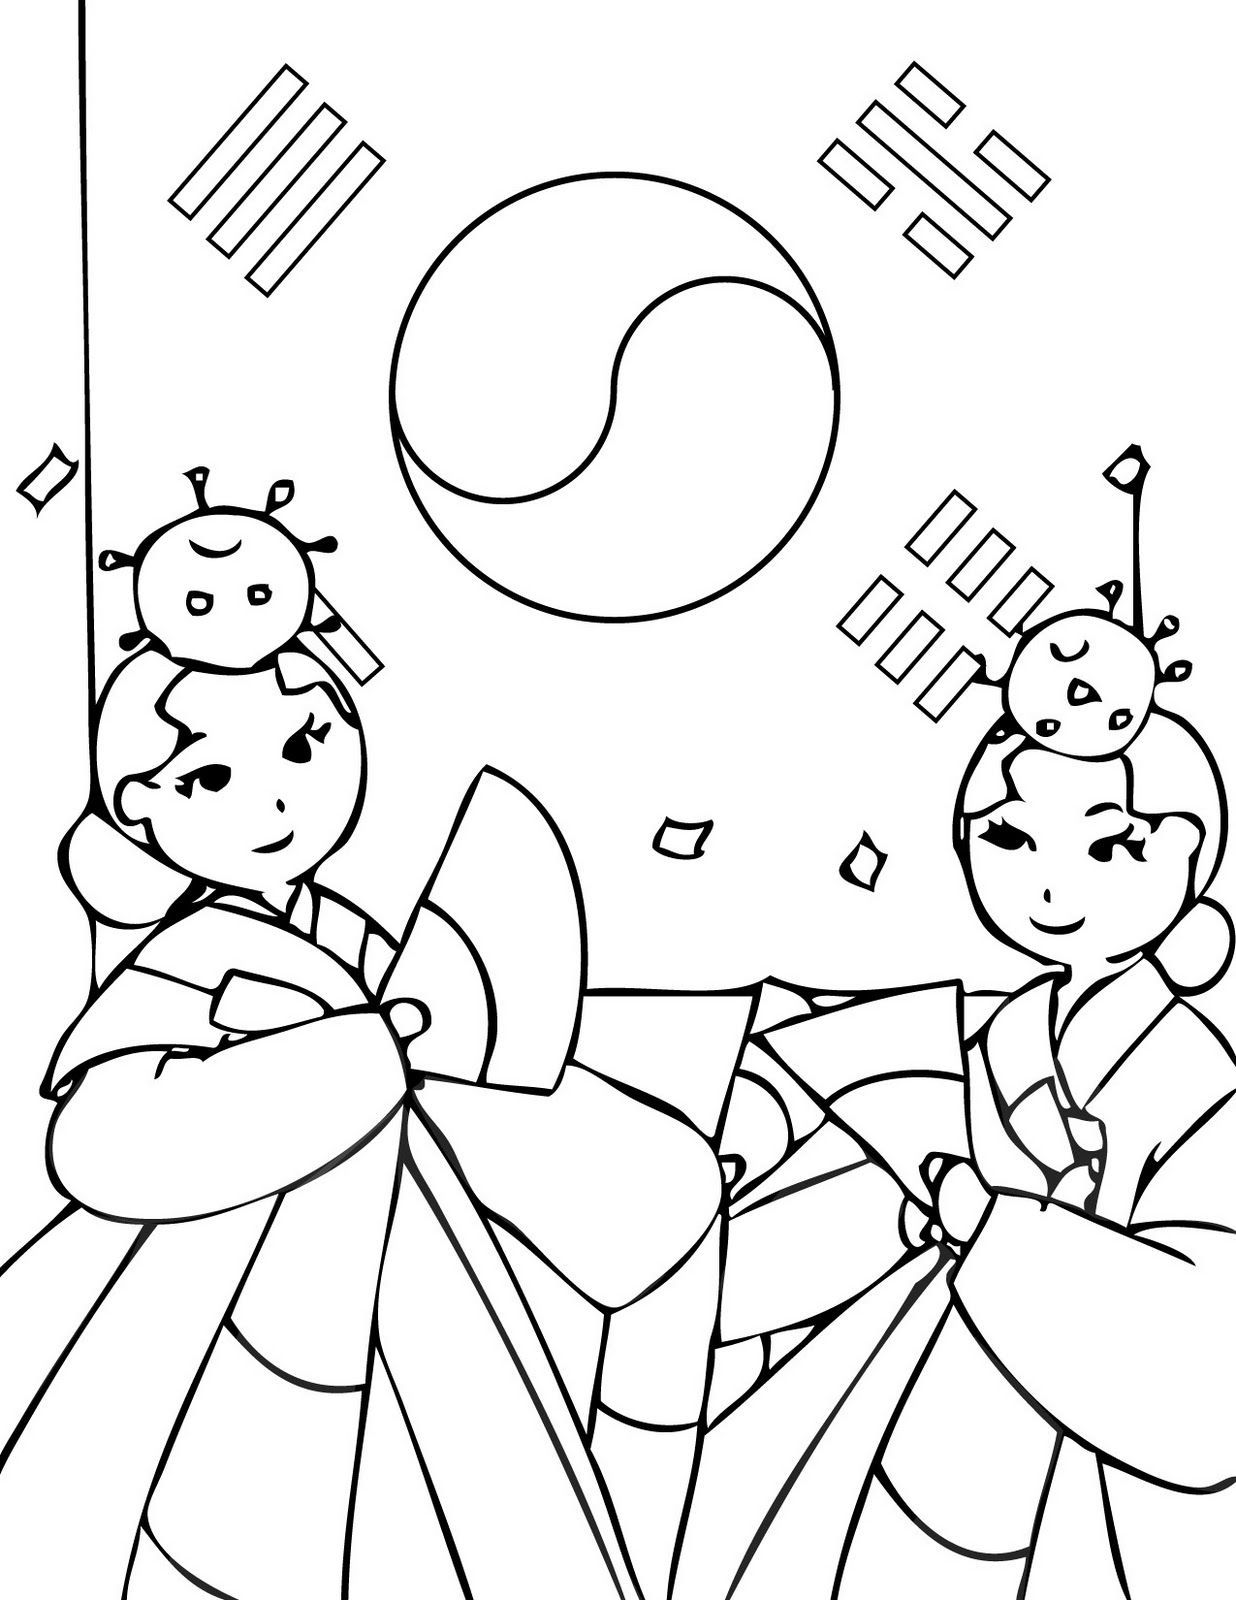 Korea Coloring Page The Cutest Blog Korean Coloring Pages - Korean-hanbok-coloring-pages